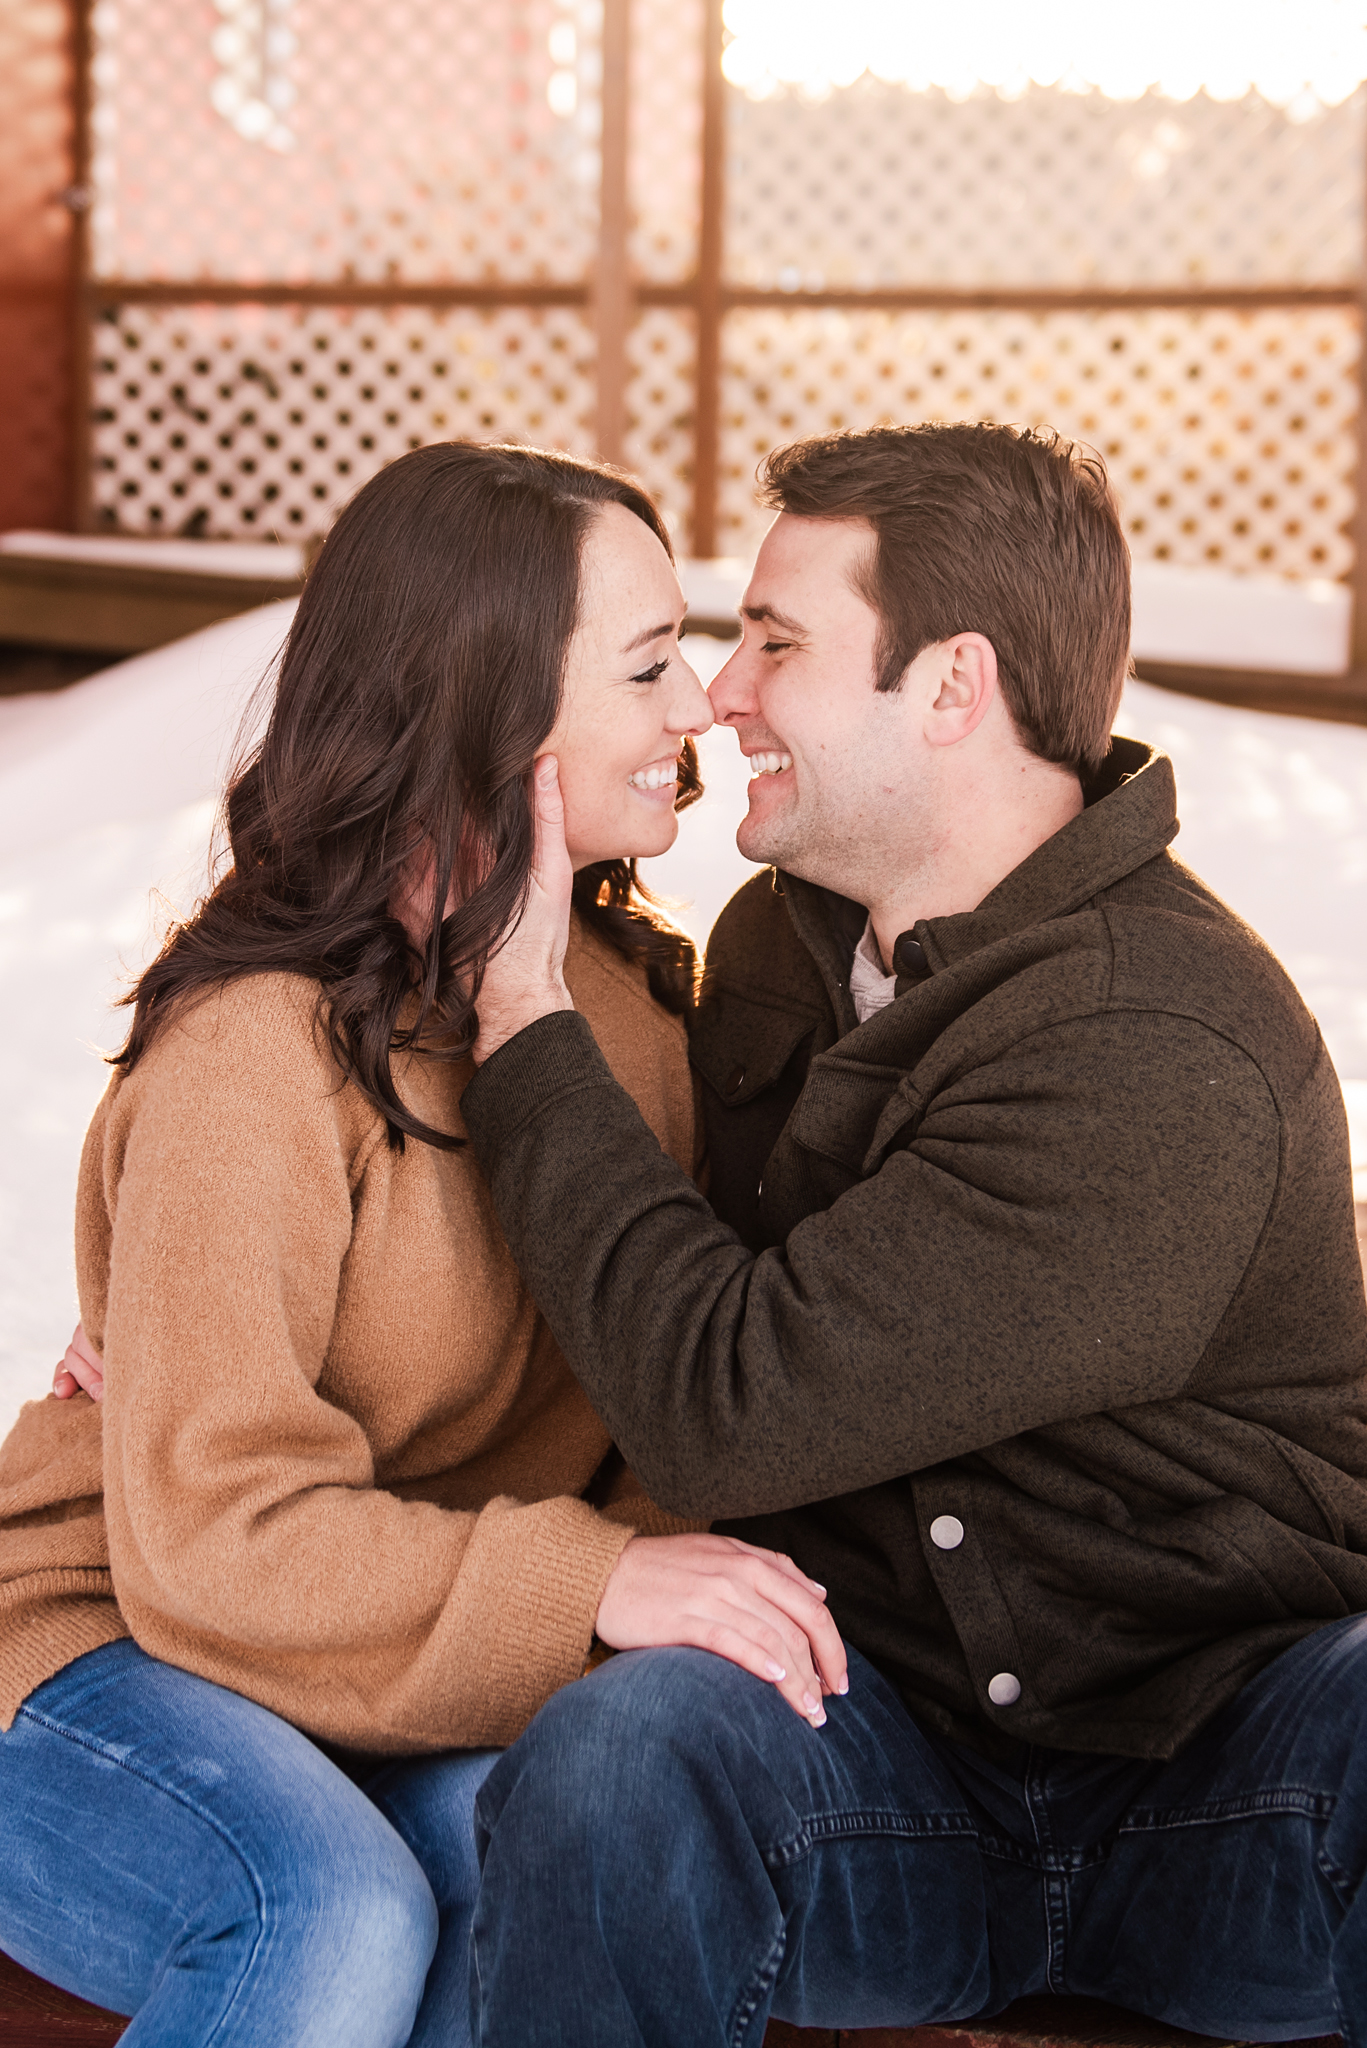 Fallbrook_Central_NY_Engagement_Session_JILL_STUDIO_Rochester_NY_Photographer_DSC_4800.jpg